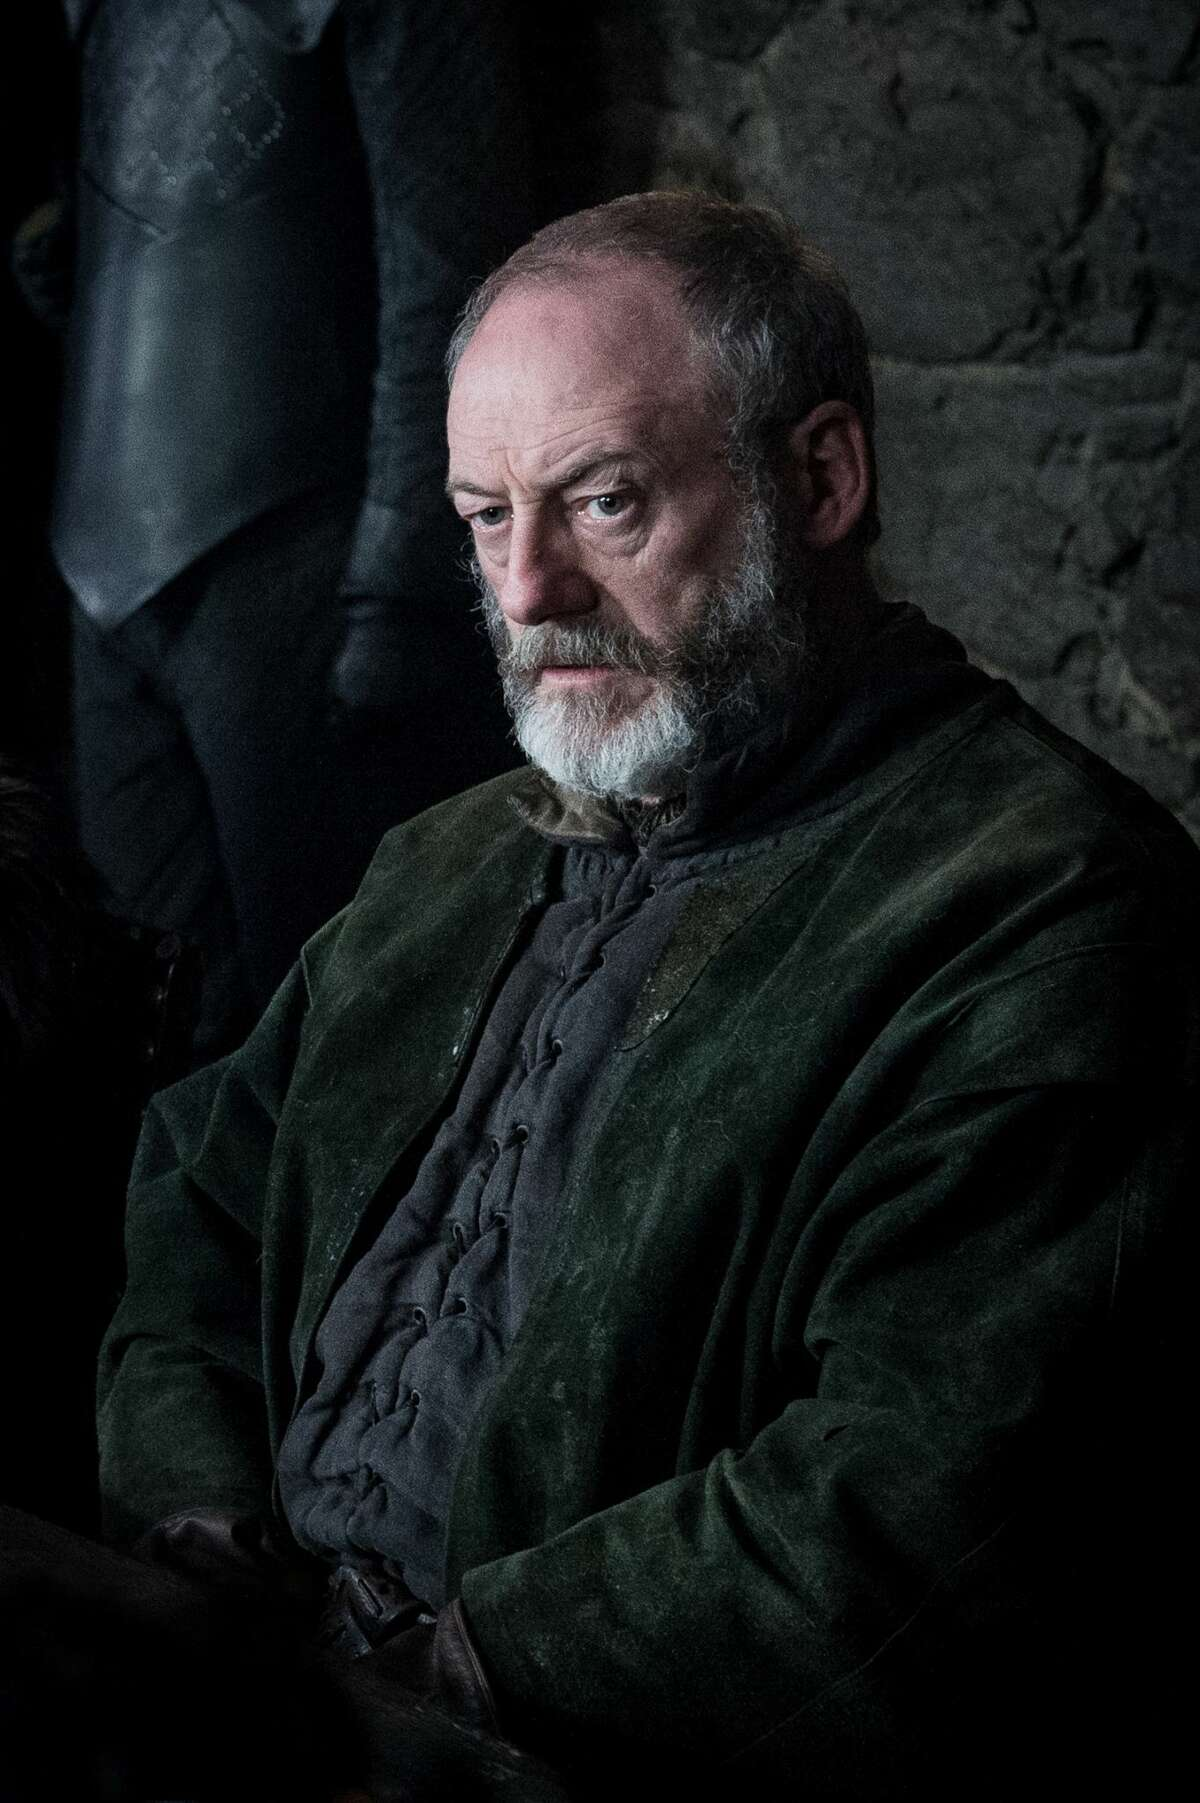 Davos Seaworth is played by ...